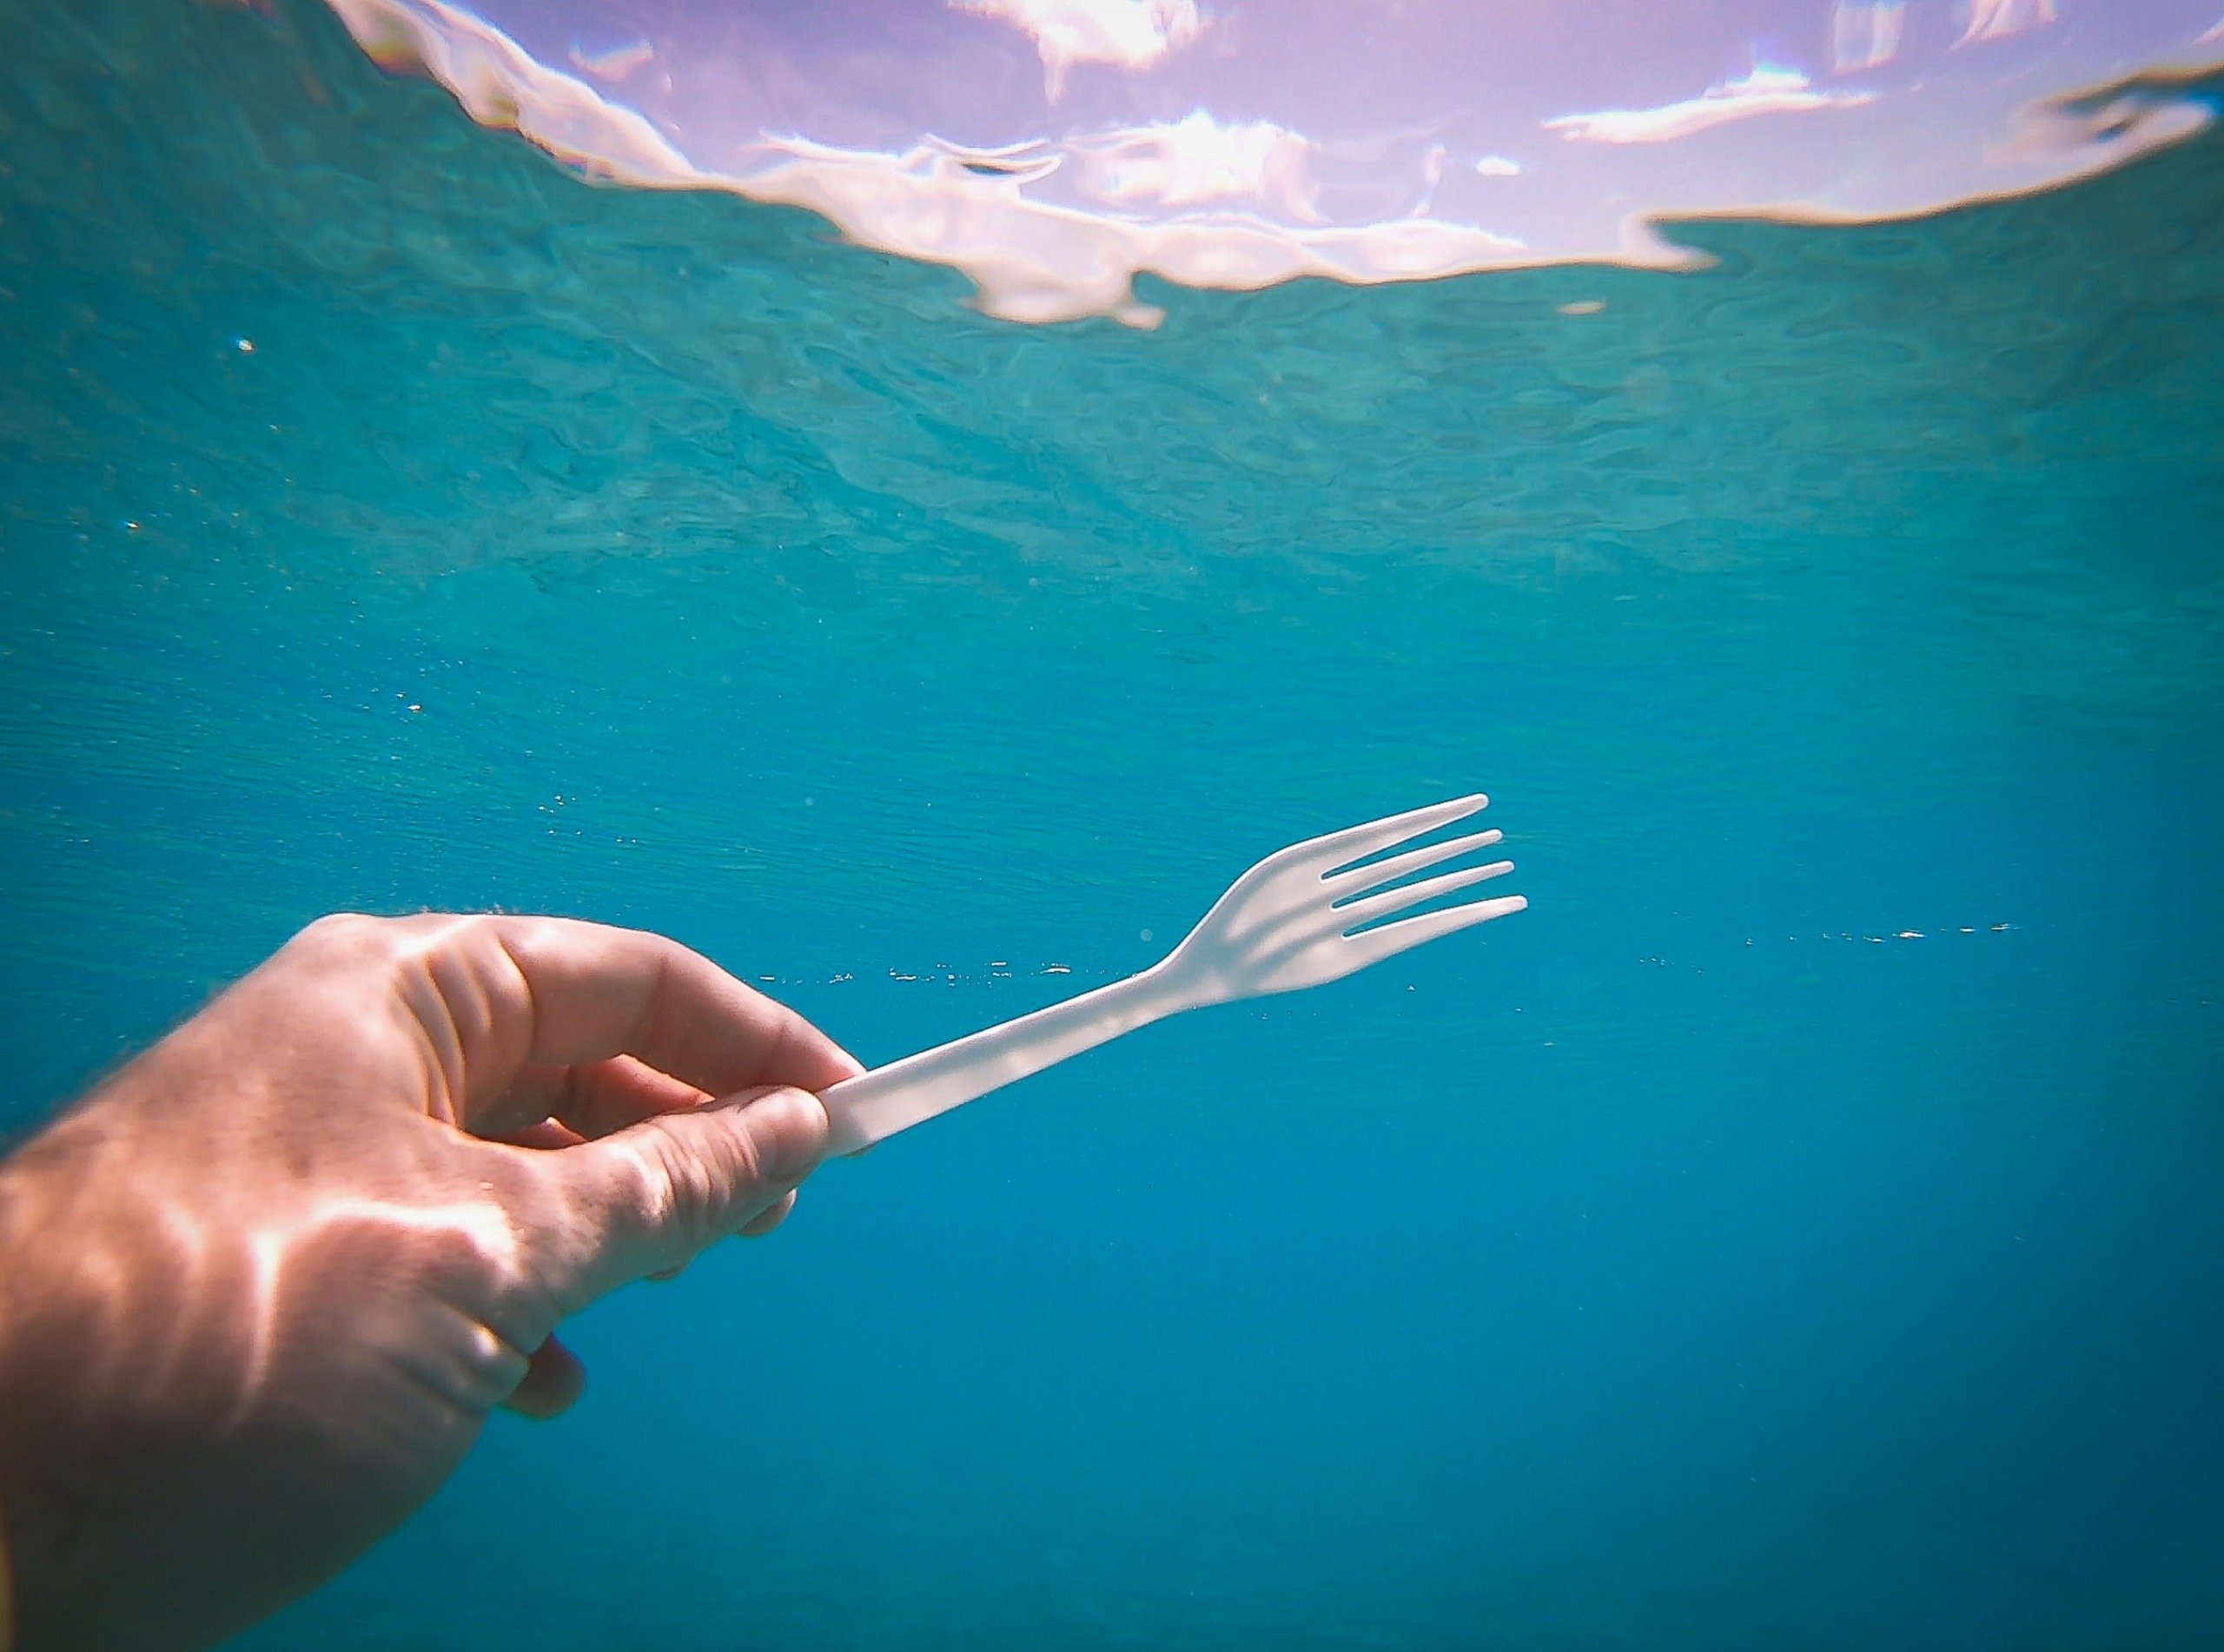 Plastic fork in water